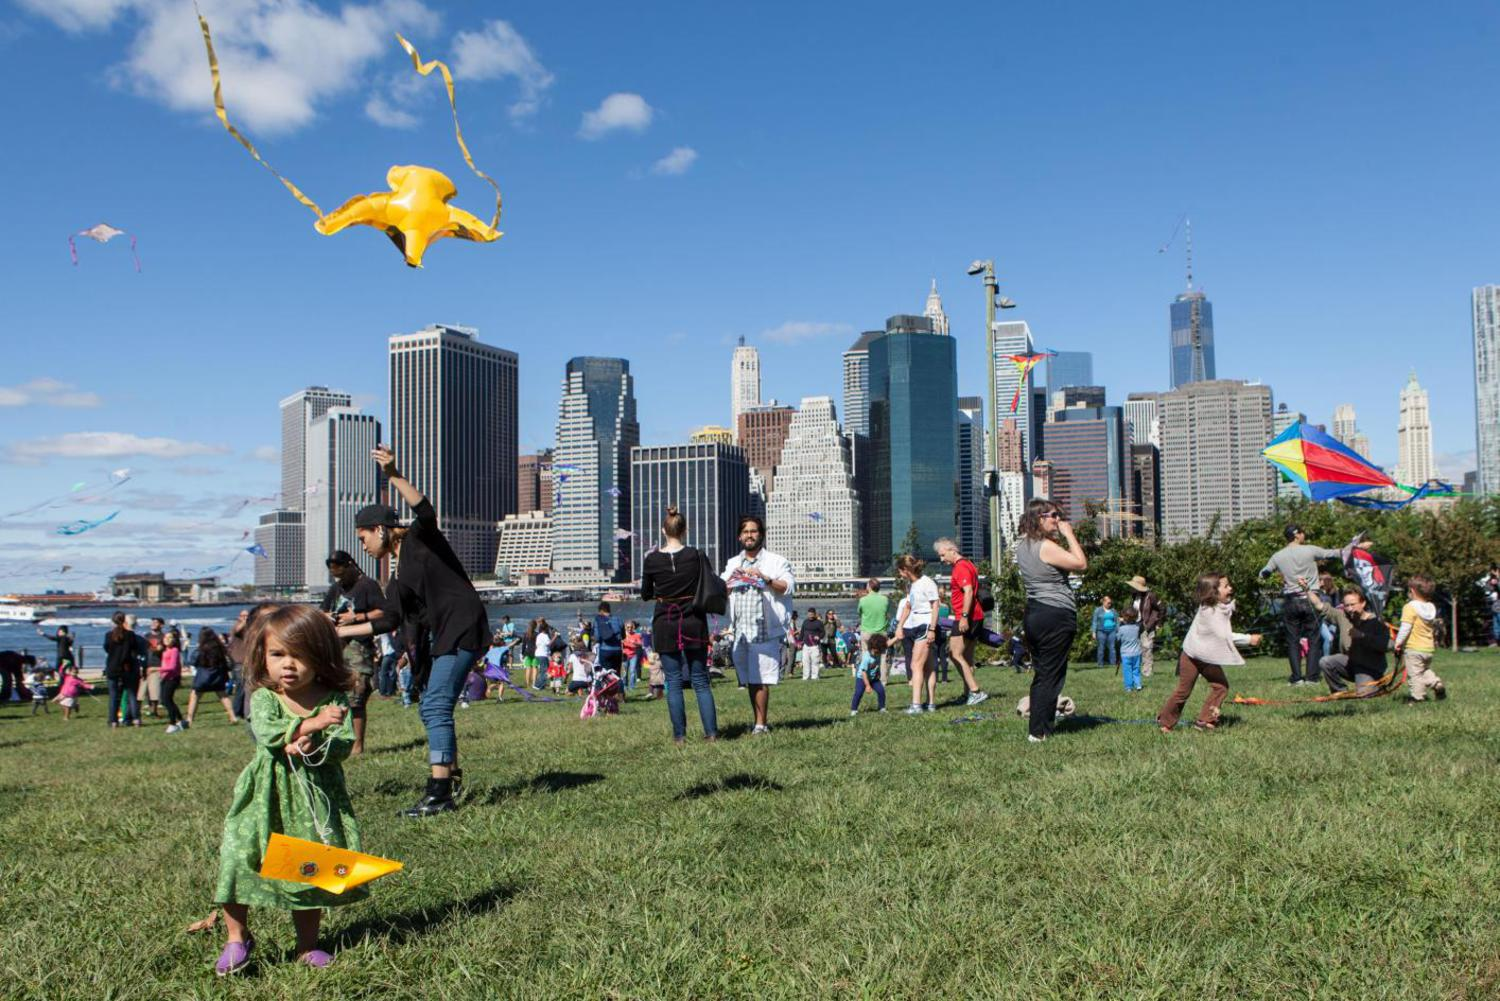 NYC Kite Festival at Brooklyn Bridge Park, Saturday September 10th, 2106